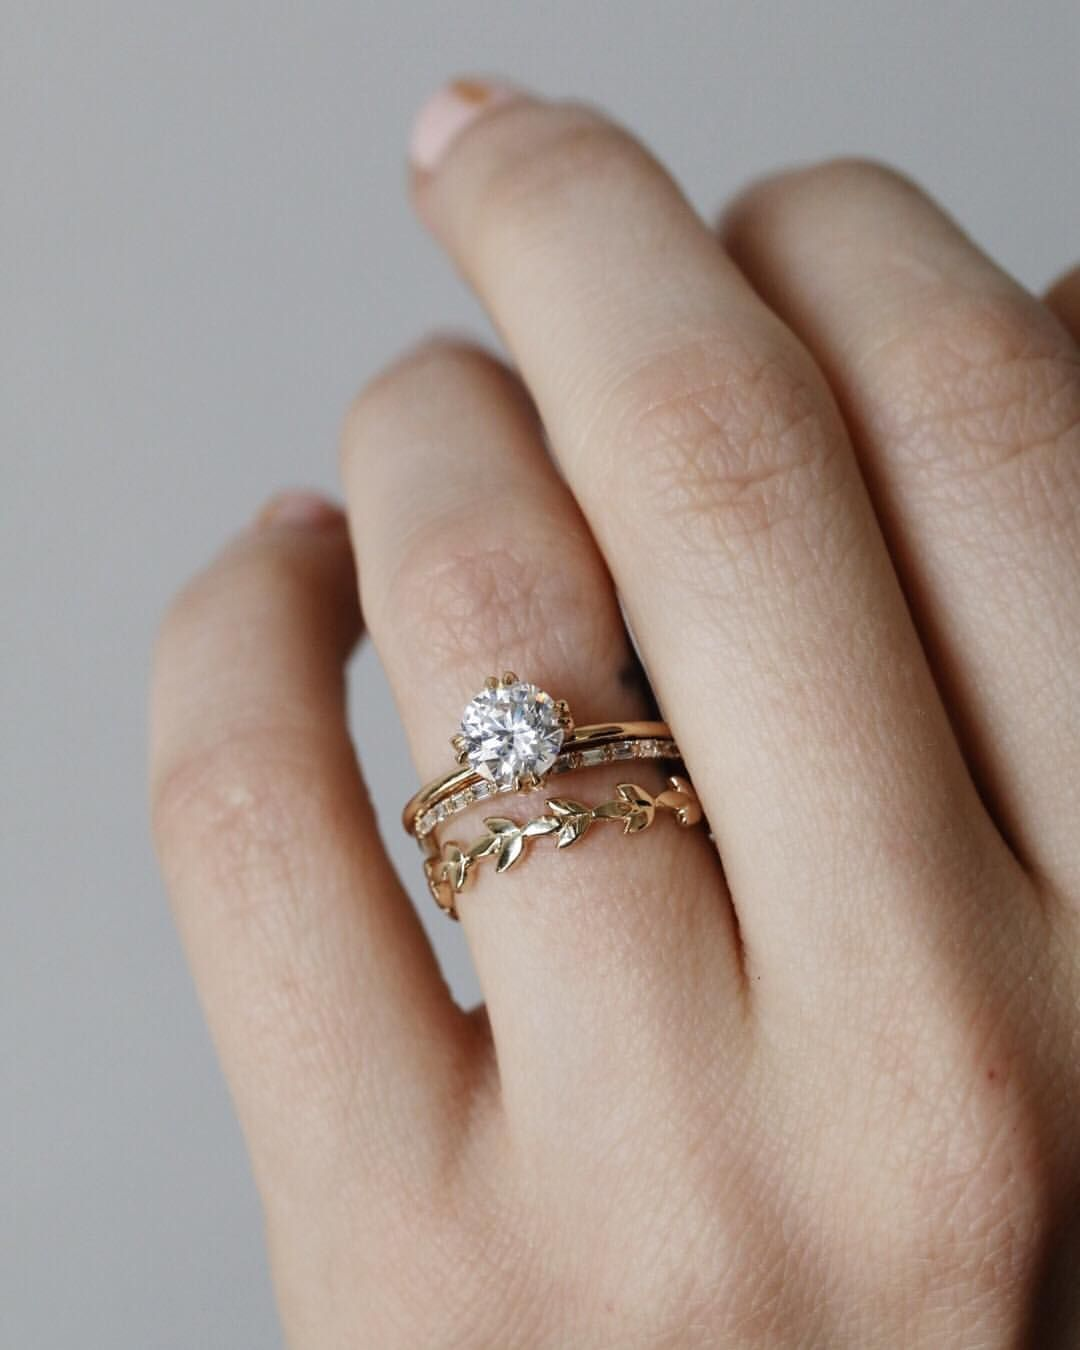 A Of Whimsical Wedding Bands Paired With Our Primrose Engagement Ring Only Enhances The Character Tap To These Styles